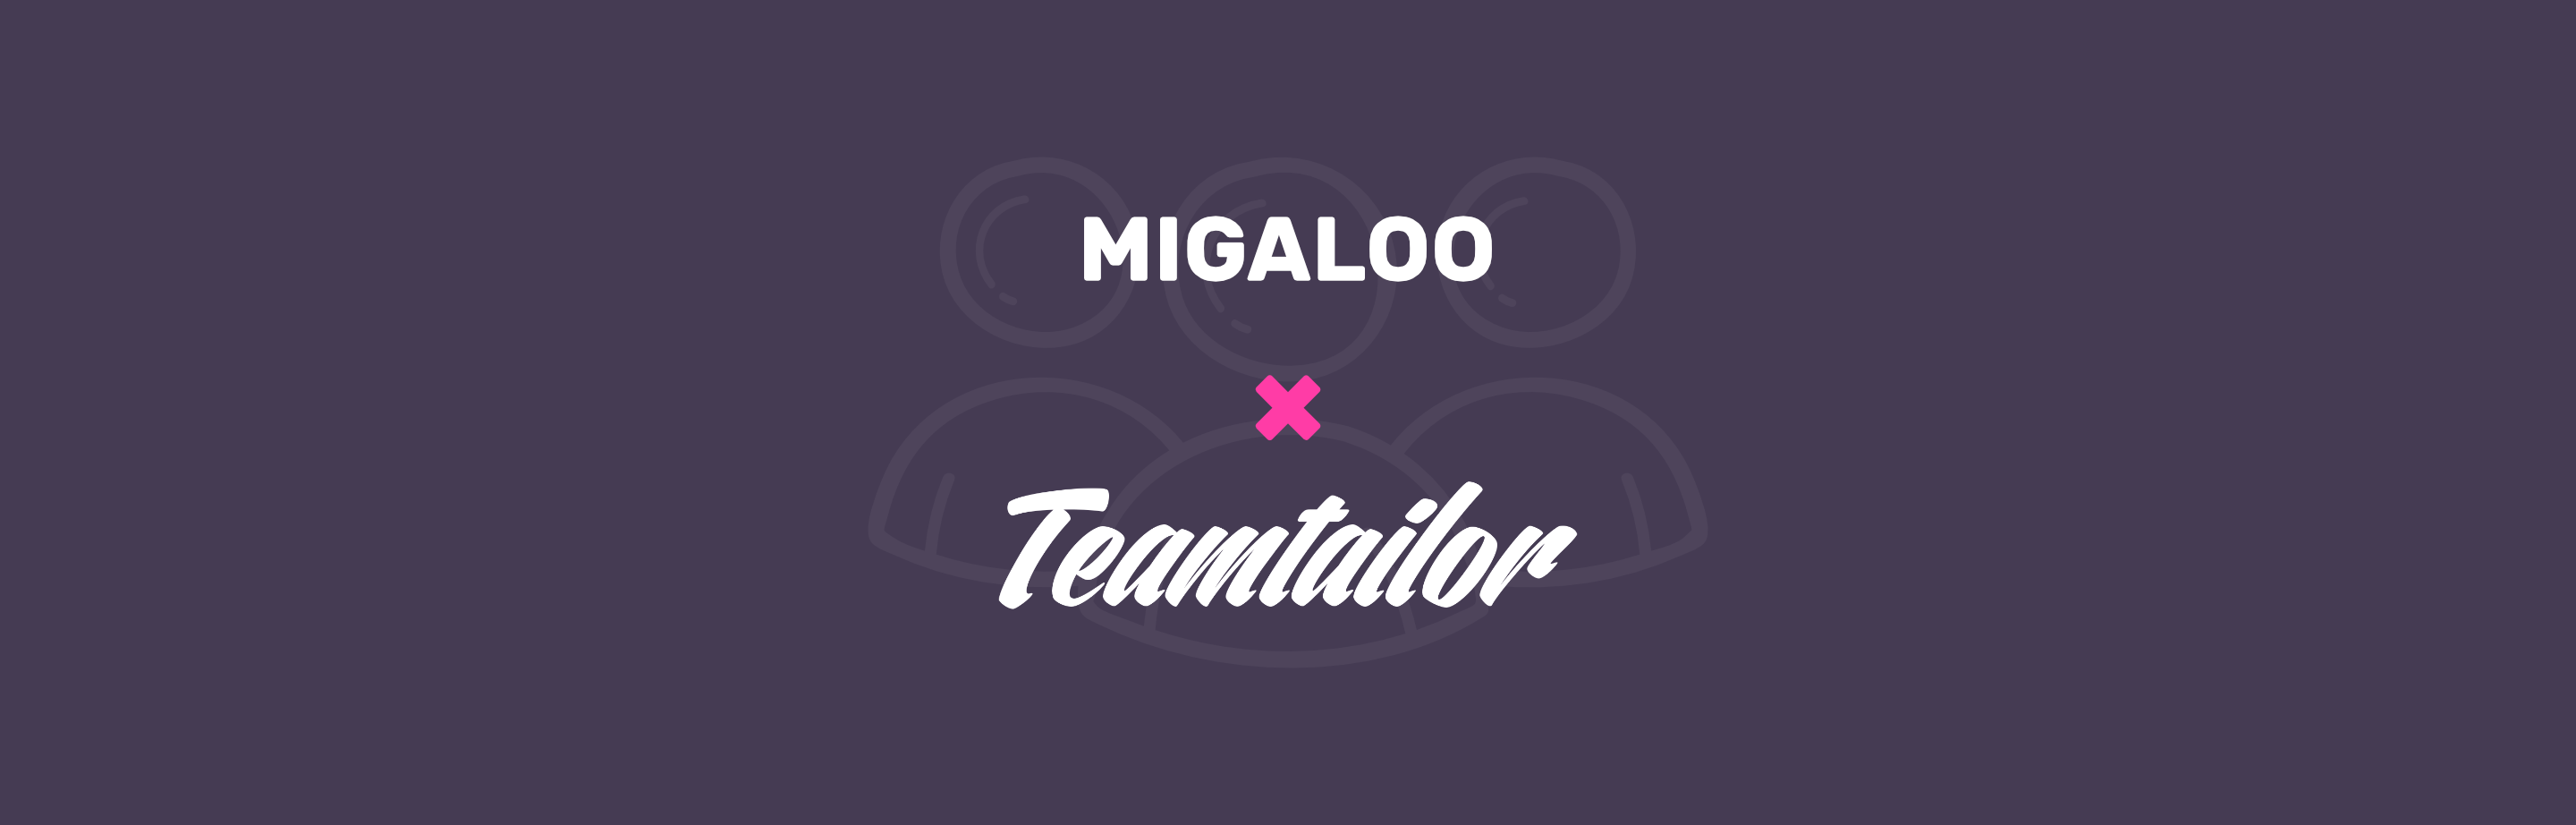 header-teamtailor